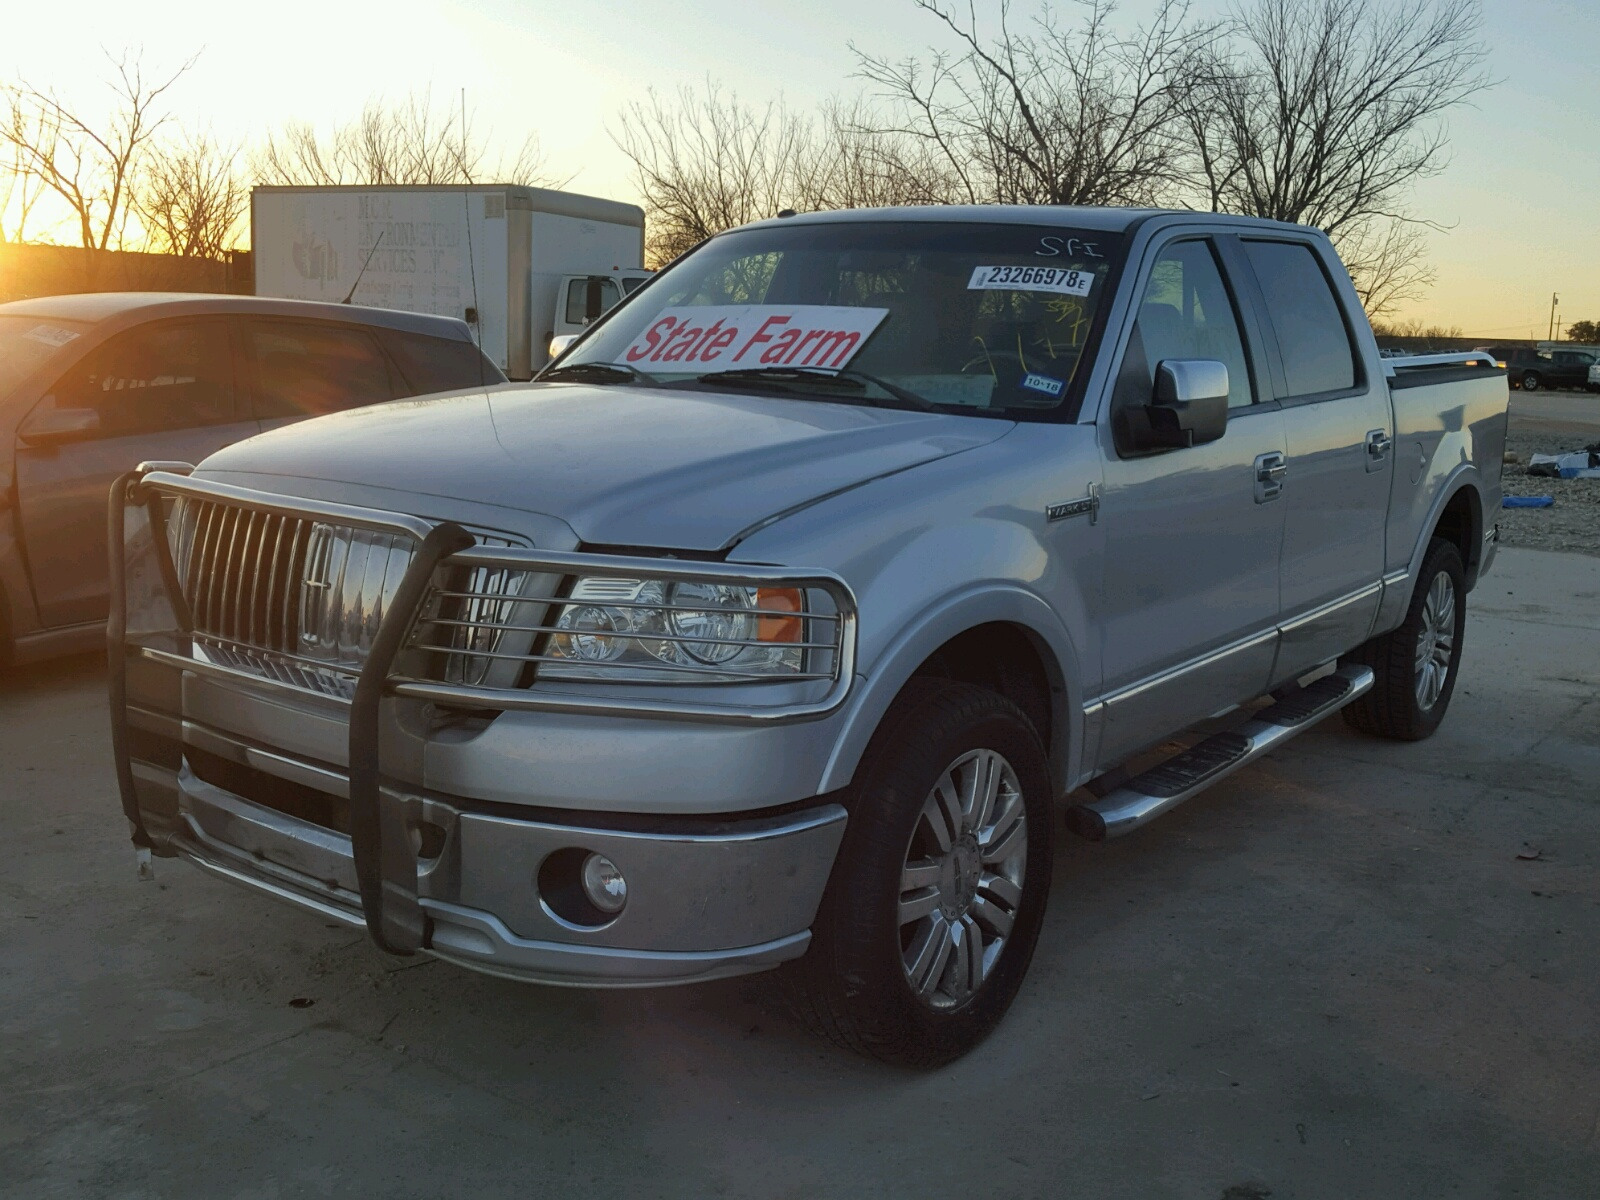 lincoln dv lt sale marklt results auction for das valuation mark data and sales